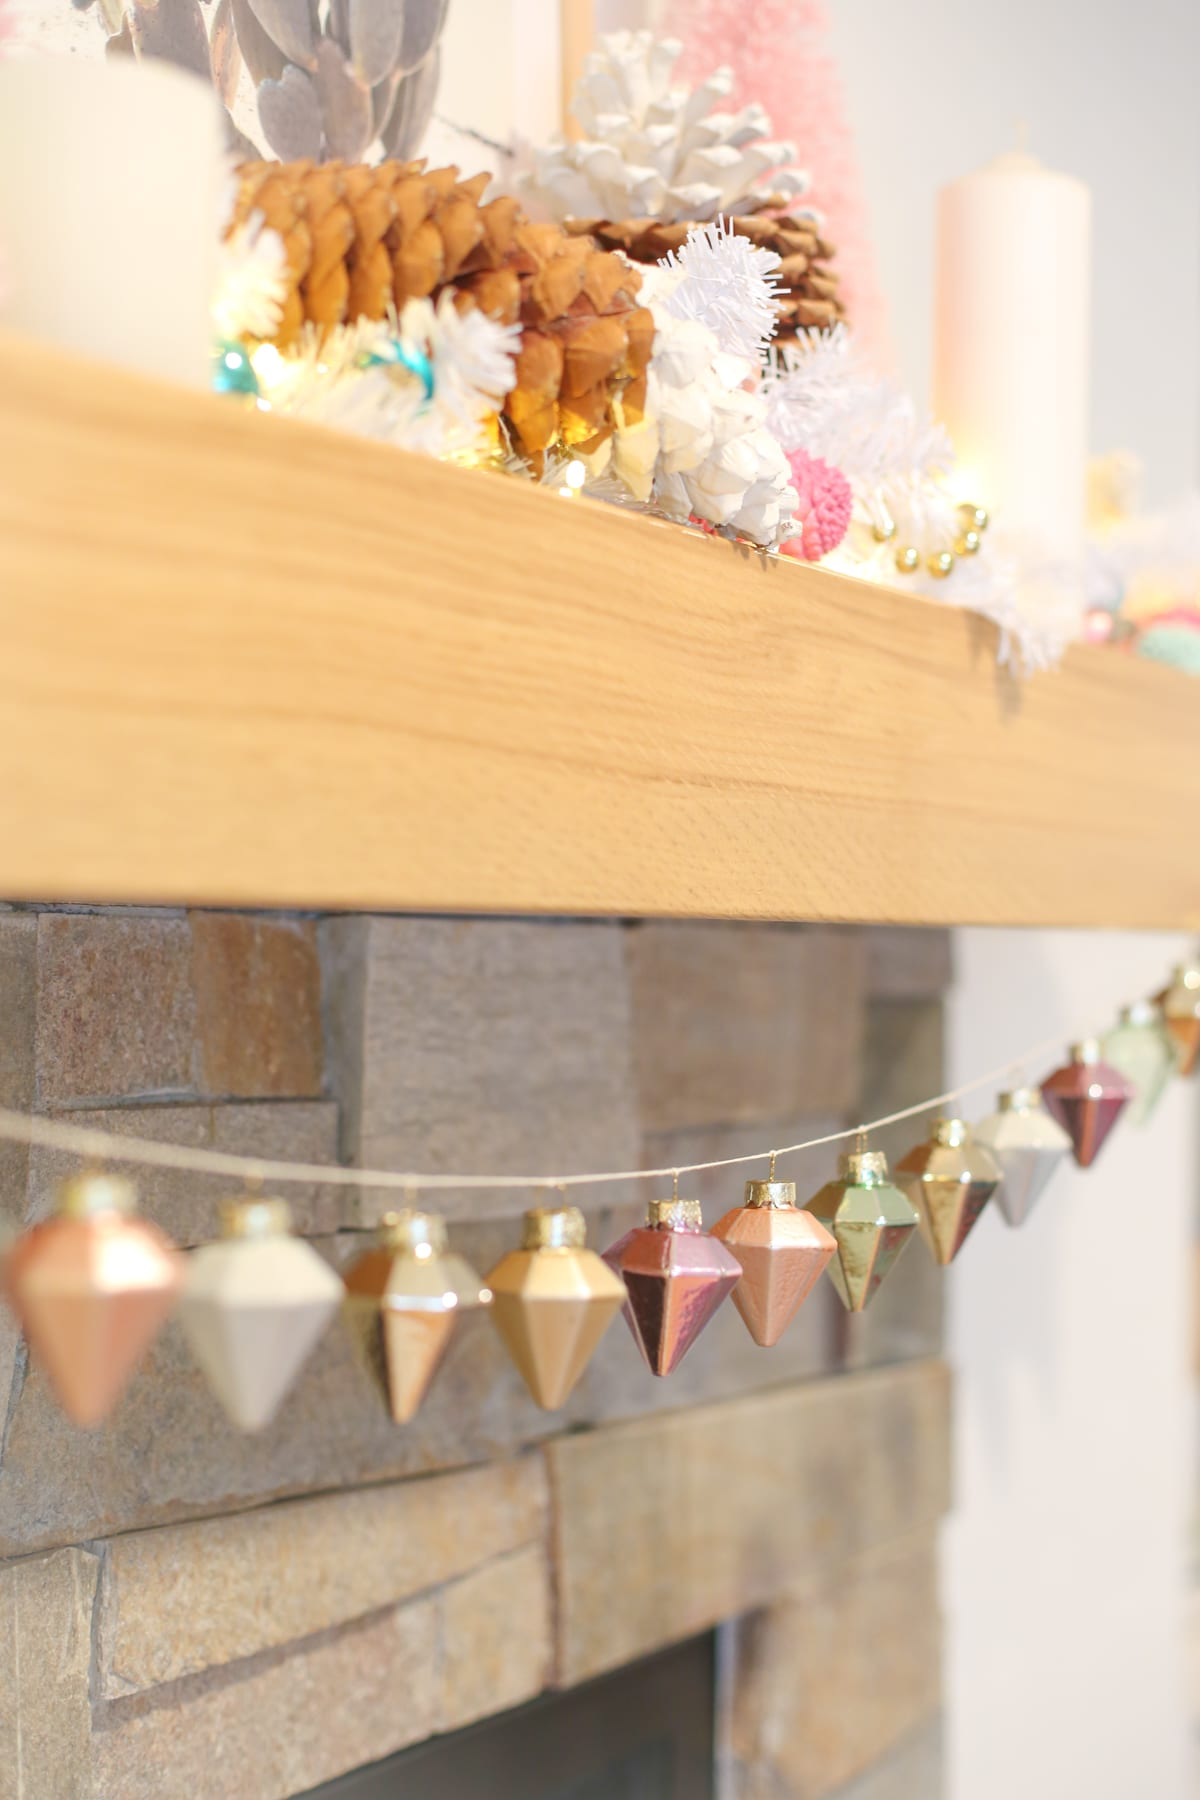 Quick And Easy Diy Ornament Garland For Your Mantel